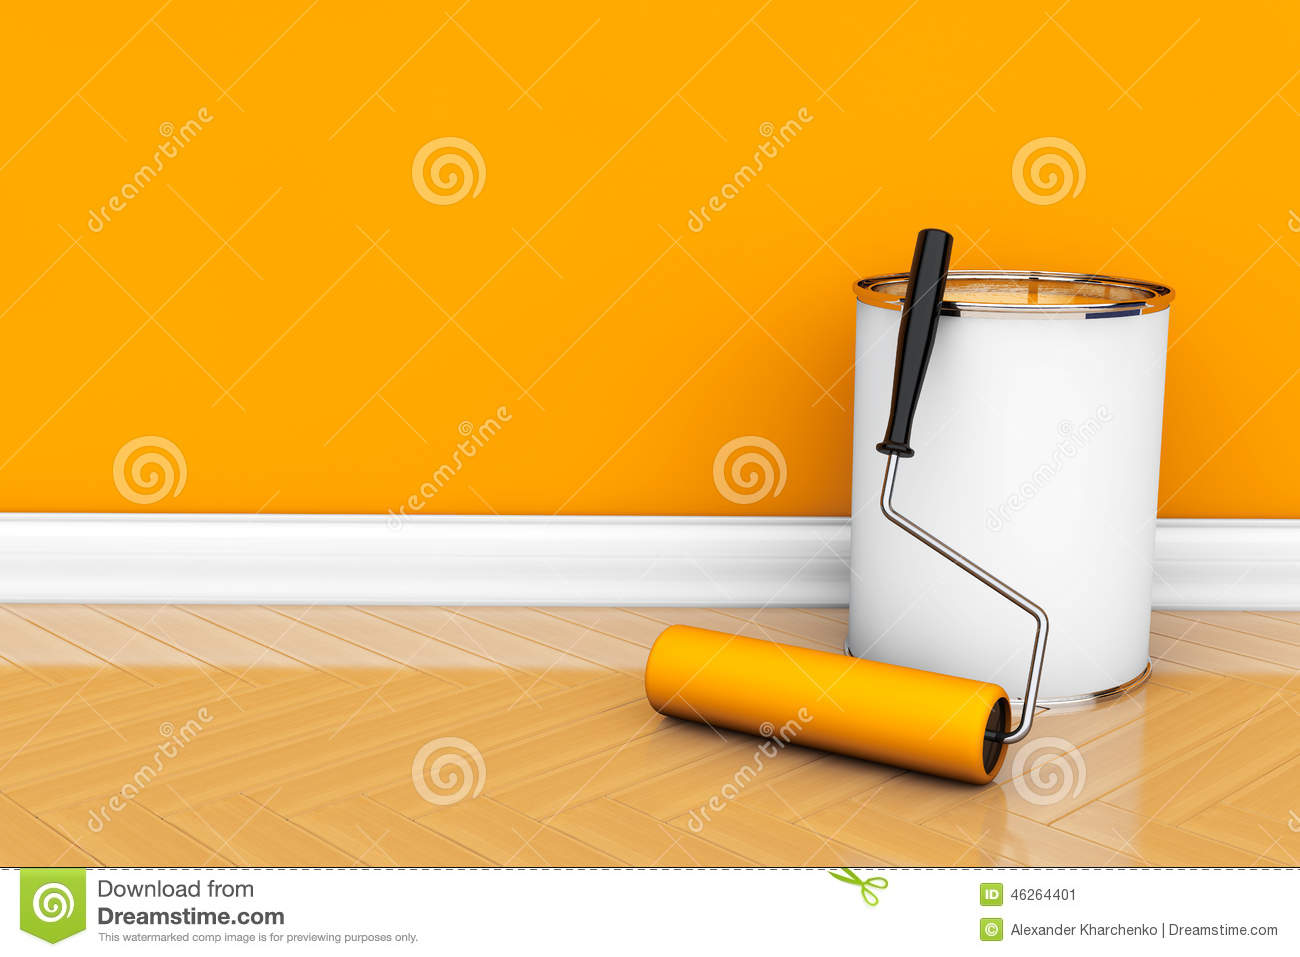 Paint Can With Roller Brush Stock Image - Image of blank, orange ...